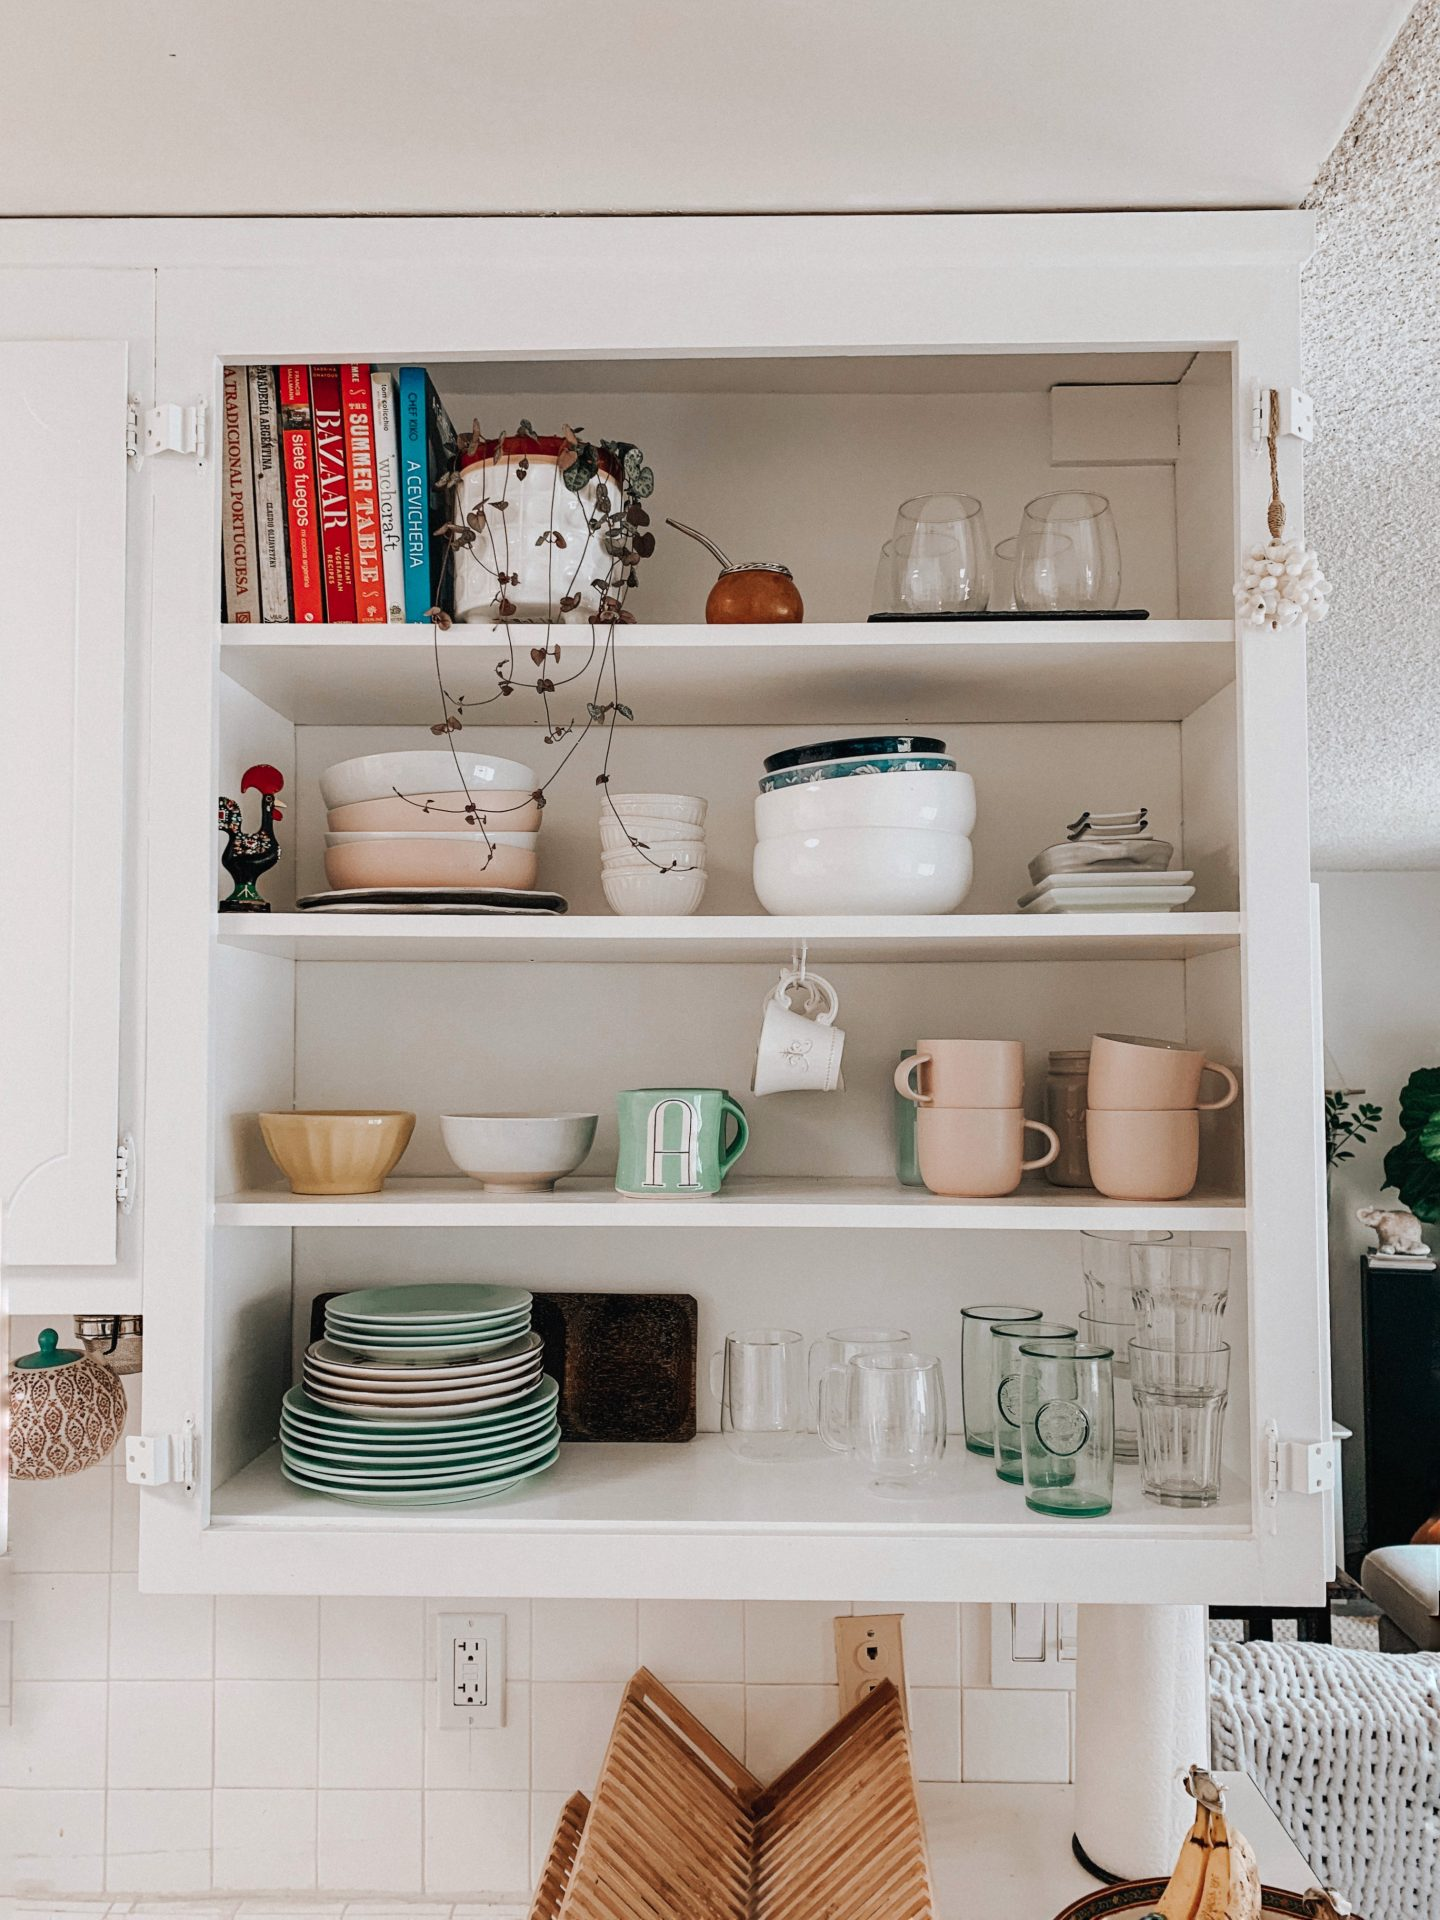 DIY an Open Kitchen Cabinet Quickly!